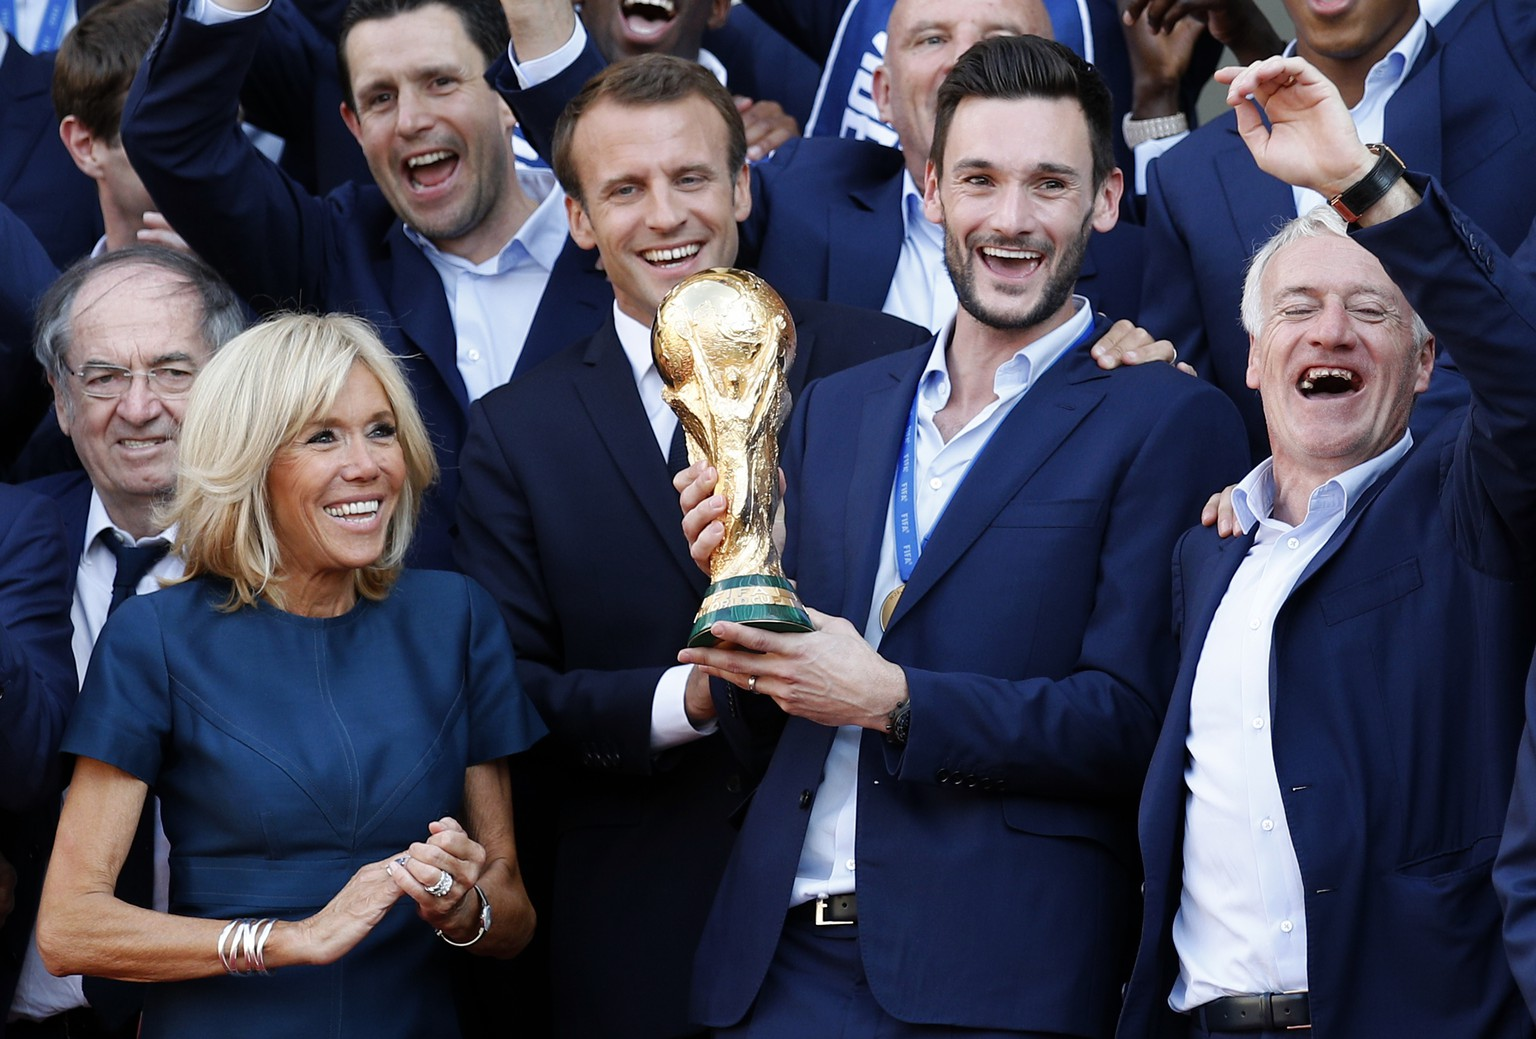 French President Emmanuel Macron, second left, his wife Brigitte, team captain Hugo Lloris holding the cup, while head coach Didier Deschamps, right, gestures at the presidential Elysee Palace after the parade down the Champs-Elysees, where tens of thousands thronged after the team's 4-2 victory over Croatia at the Monday, July 16, 2018 in Paris. (AP Photo/Francois Mori)